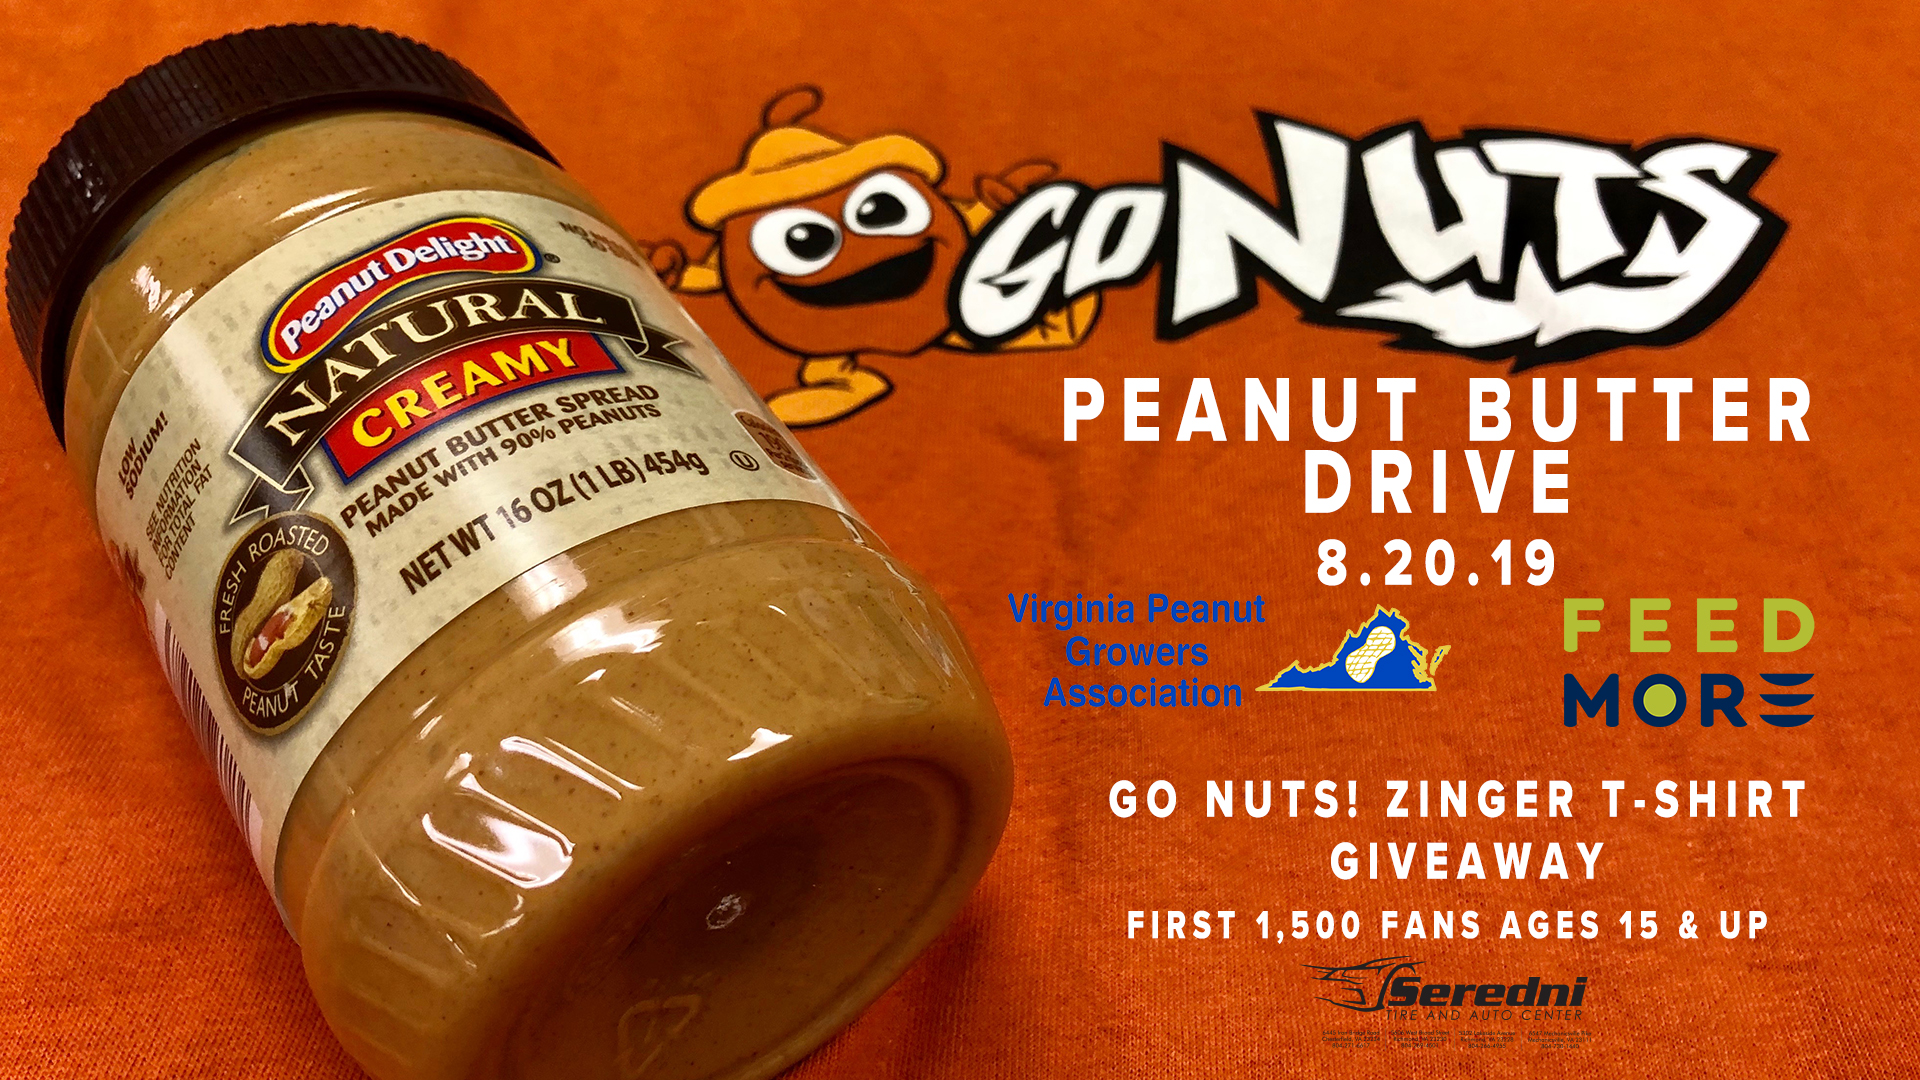 Peanut Butter Drive Richmond Flying Squirrels